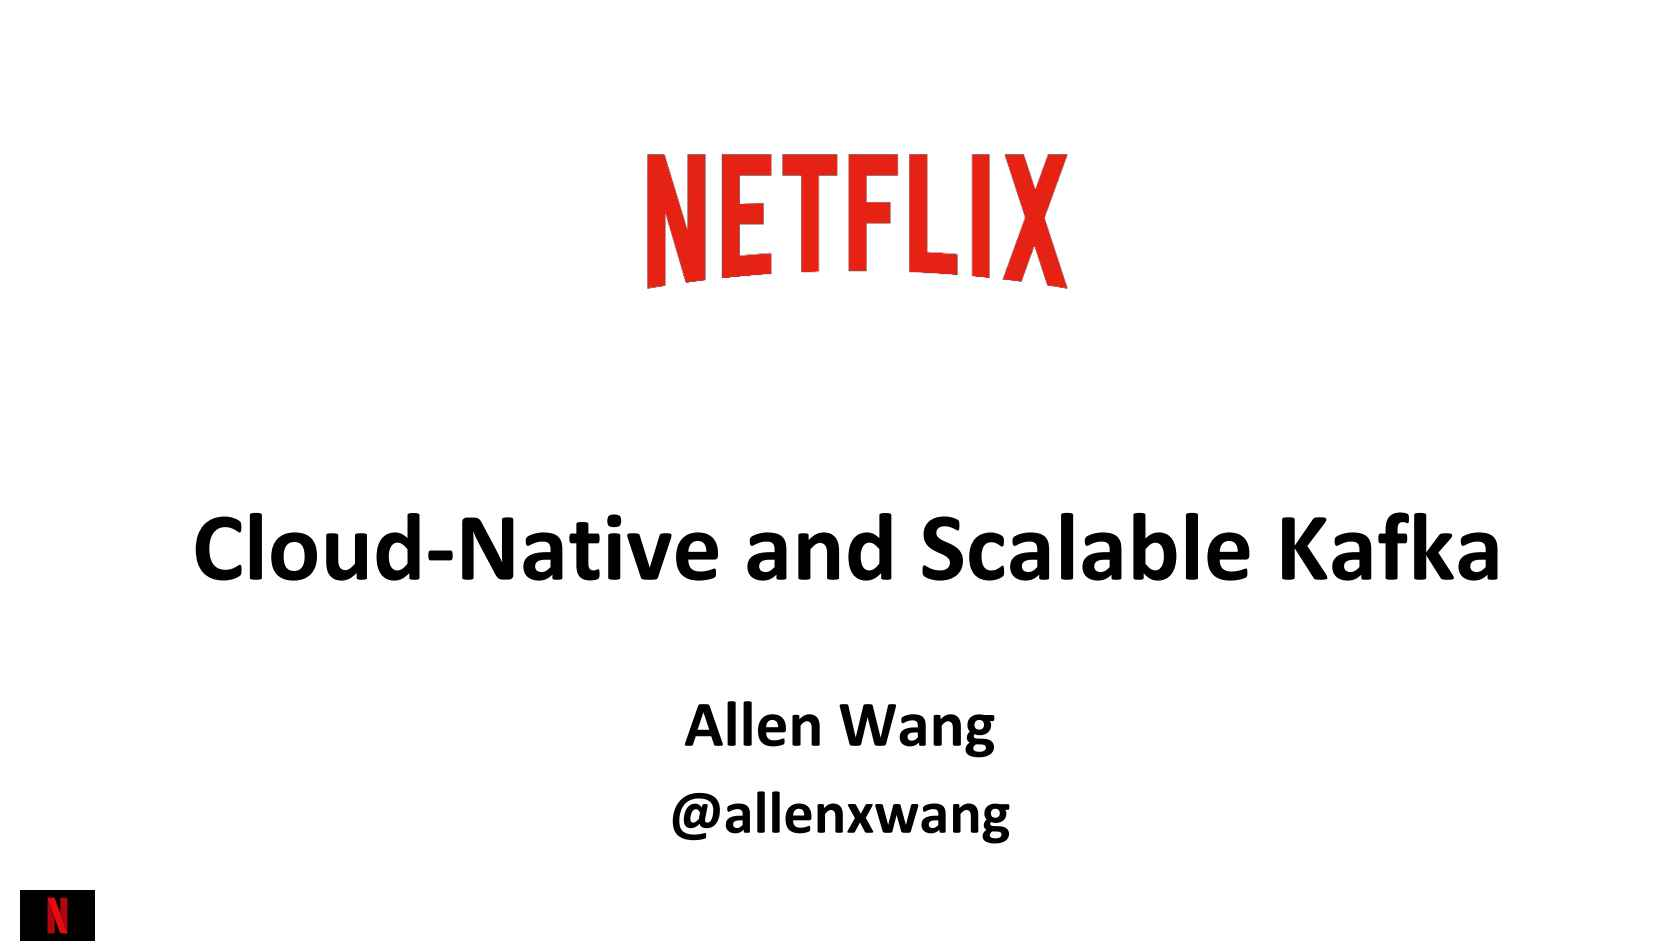 Cloud-Native and Scalable Kafka Architecture